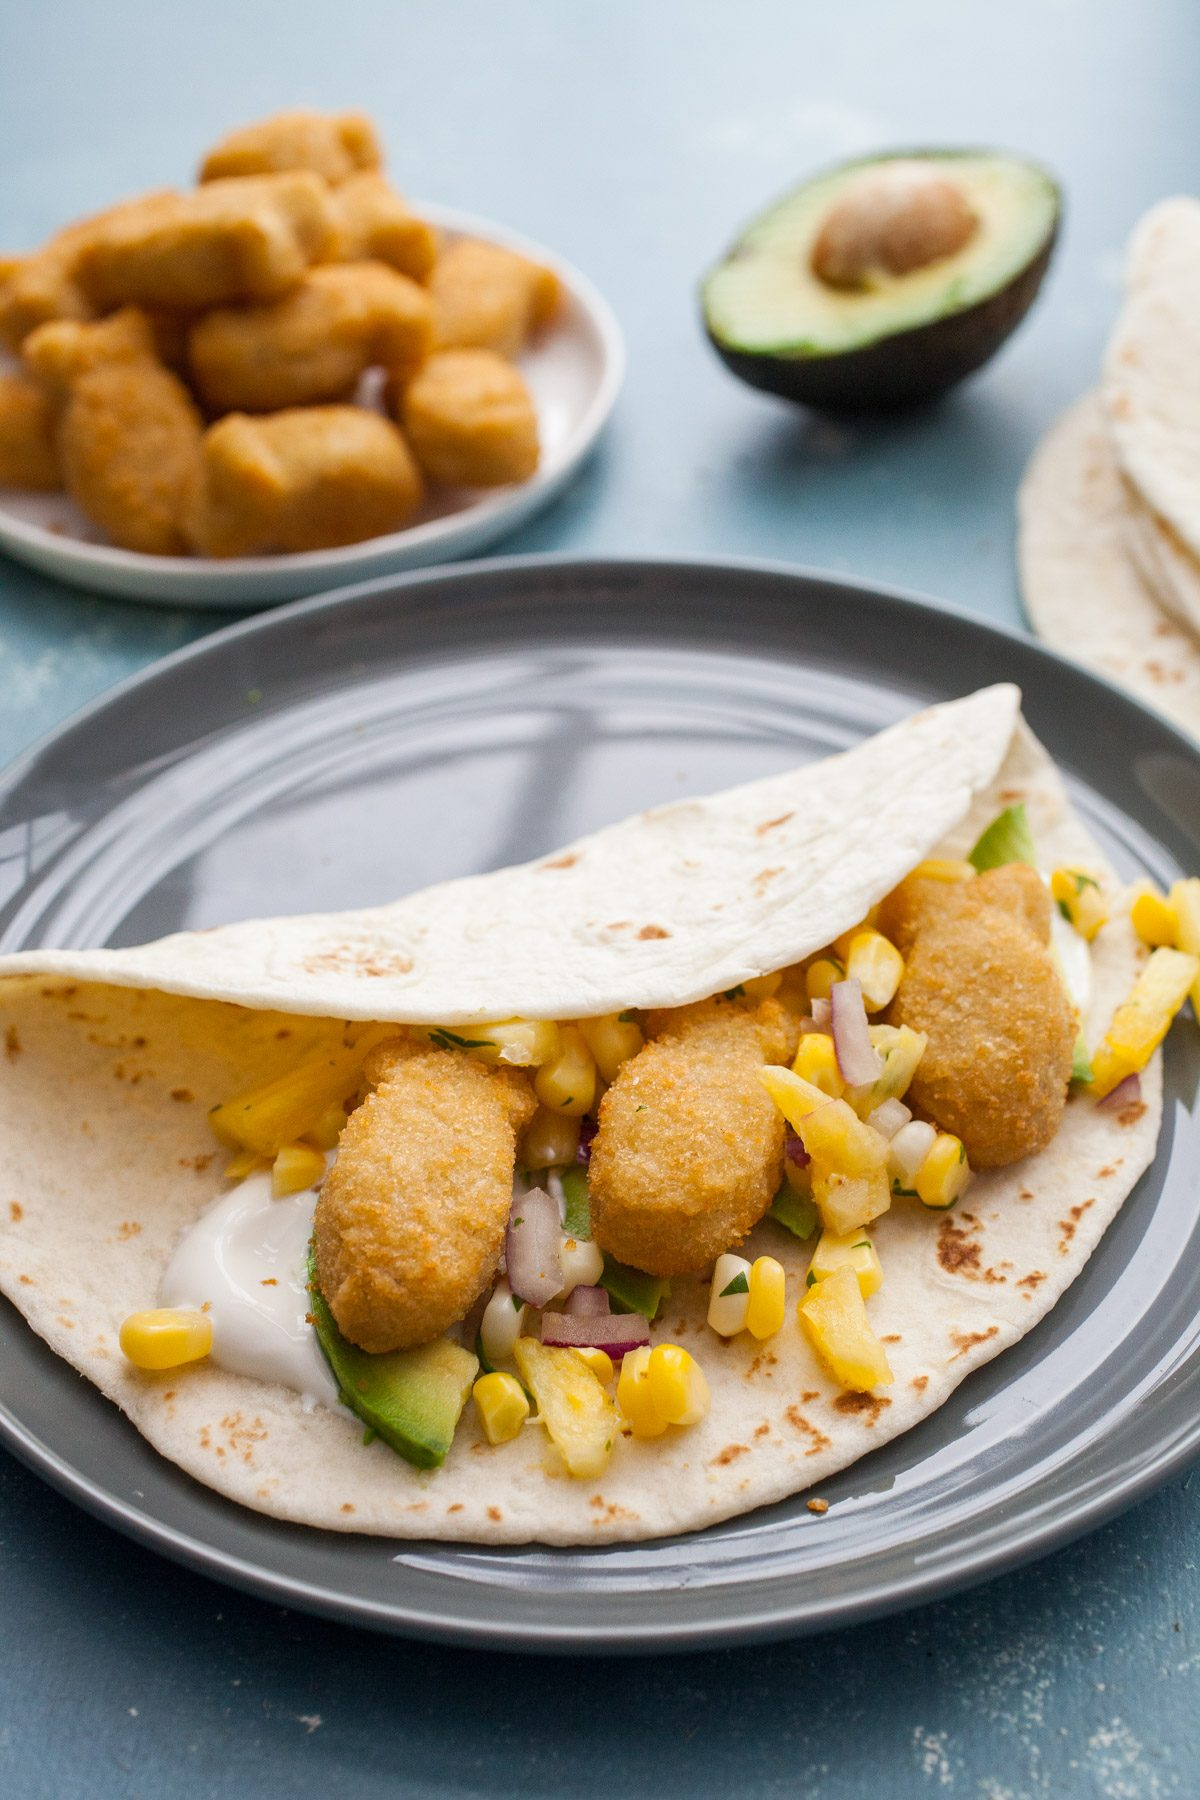 Kid friendly fish tacos dr praeger 39 s sensible foods for Kid friendly fish recipes